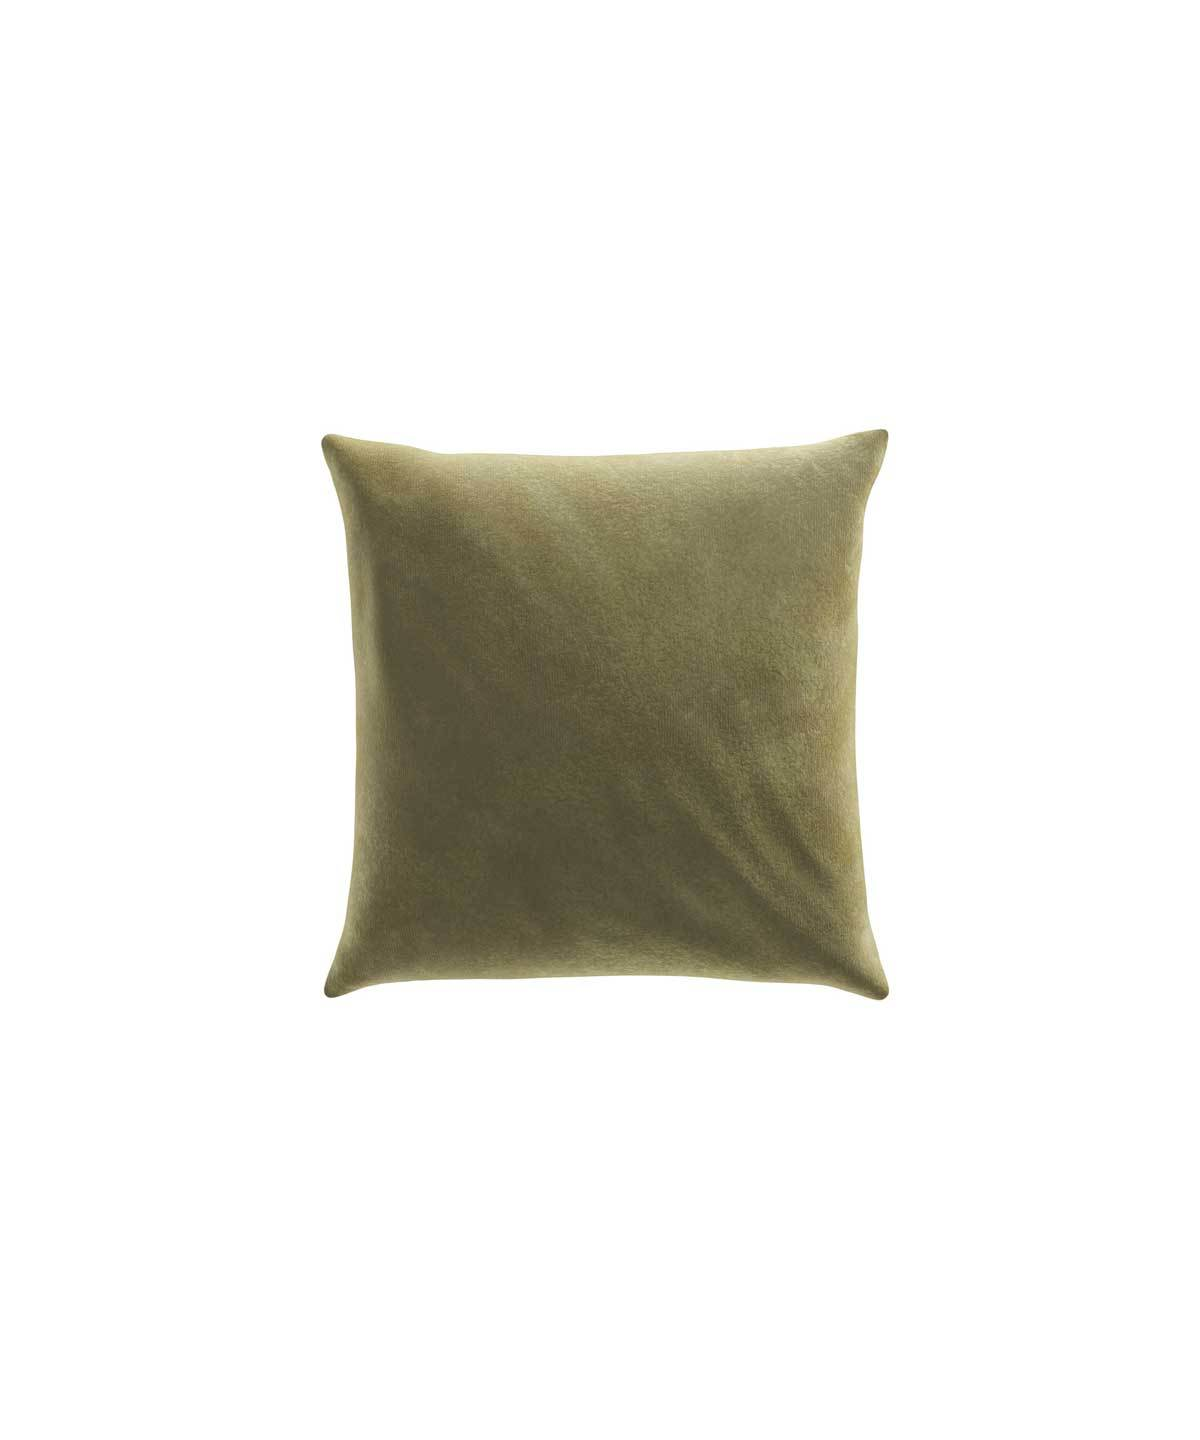 "18"" Throw Pillow in Loden by TRNK 